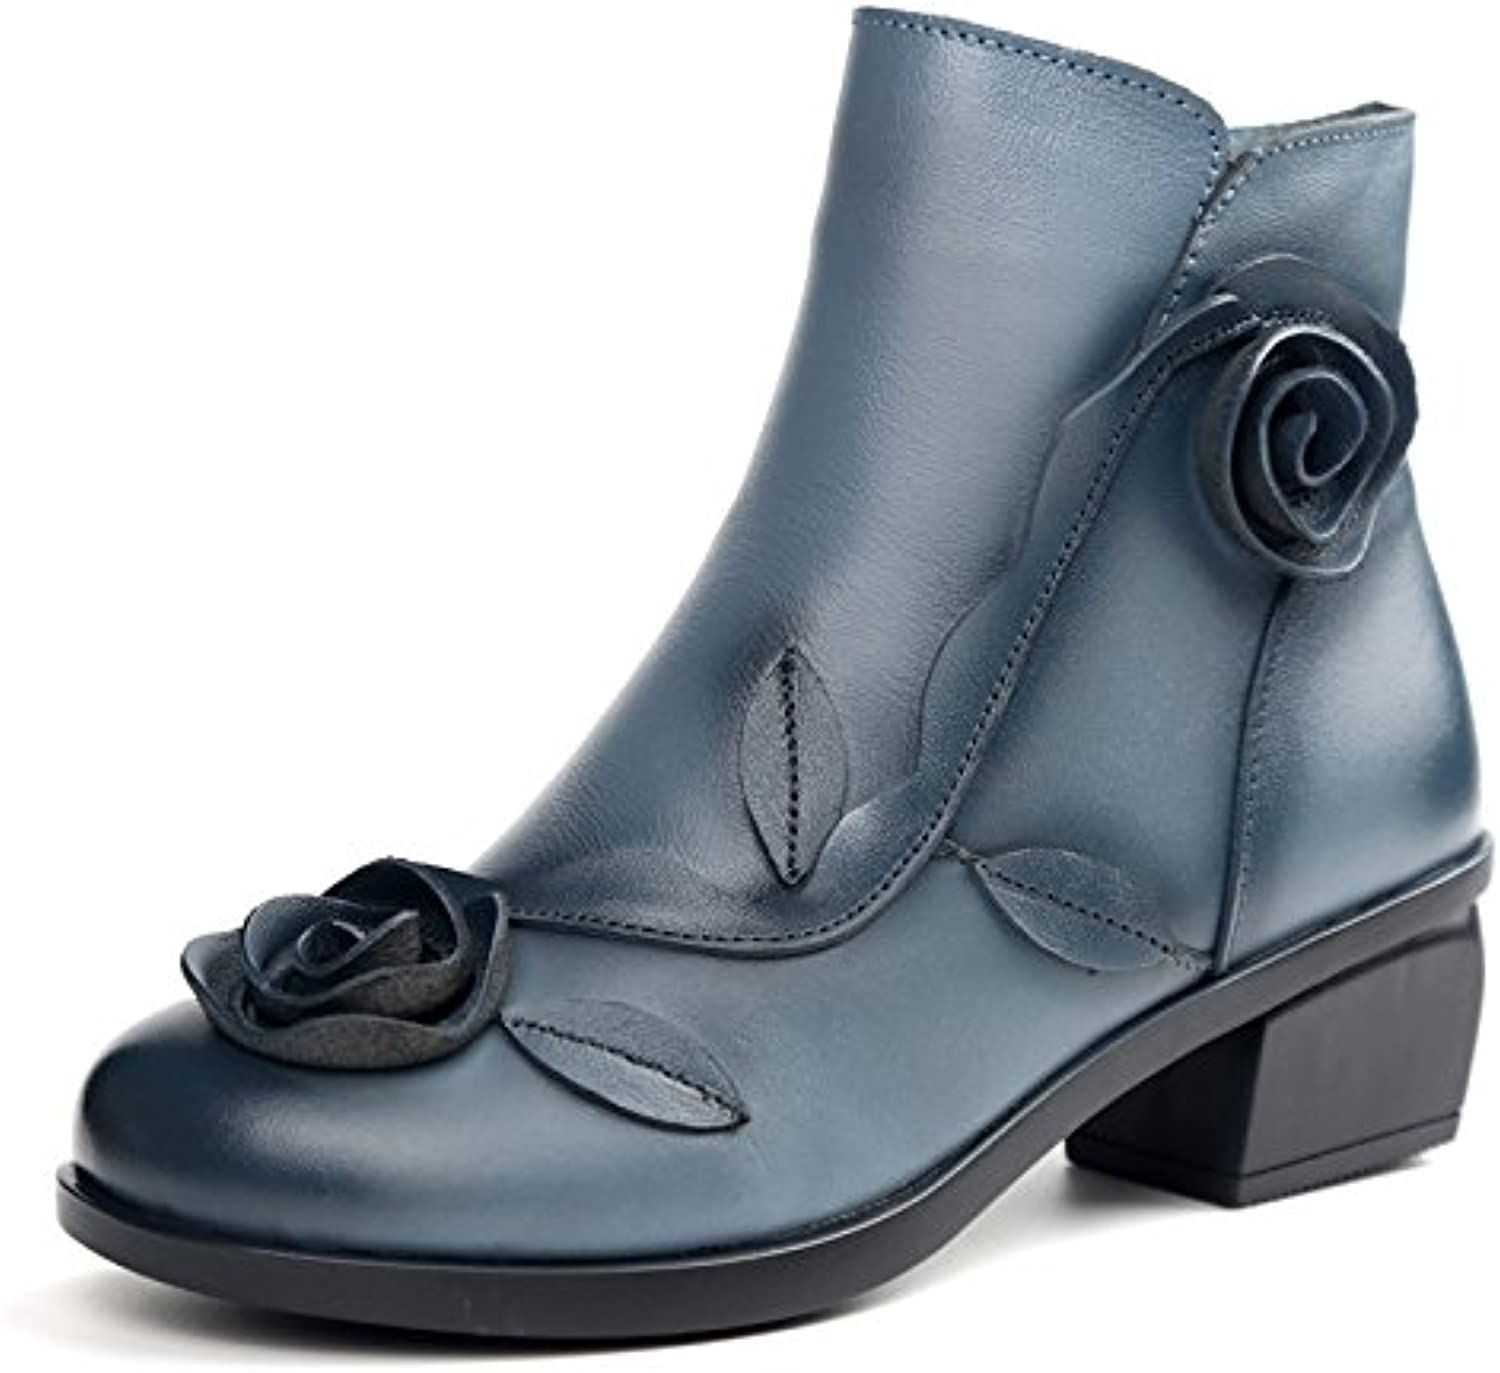 LingGT Flower Boots for Women Handmade Vintage Leather Block Leather shoes (color   bluee, Size   CA 7)